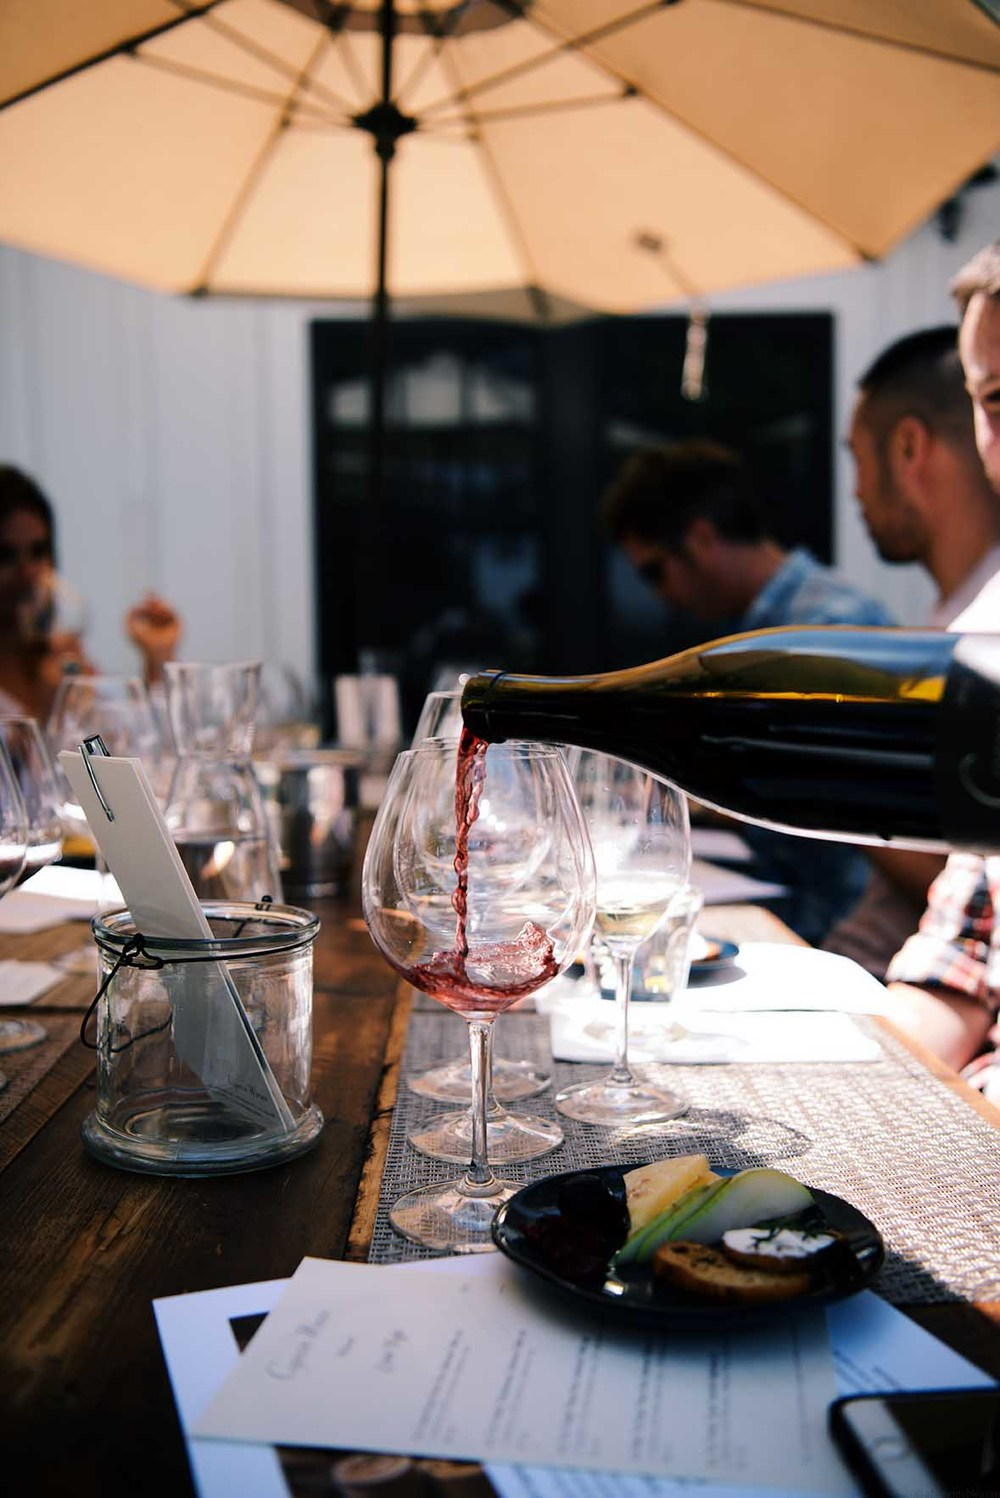 copain winery, CA | A Brown Table